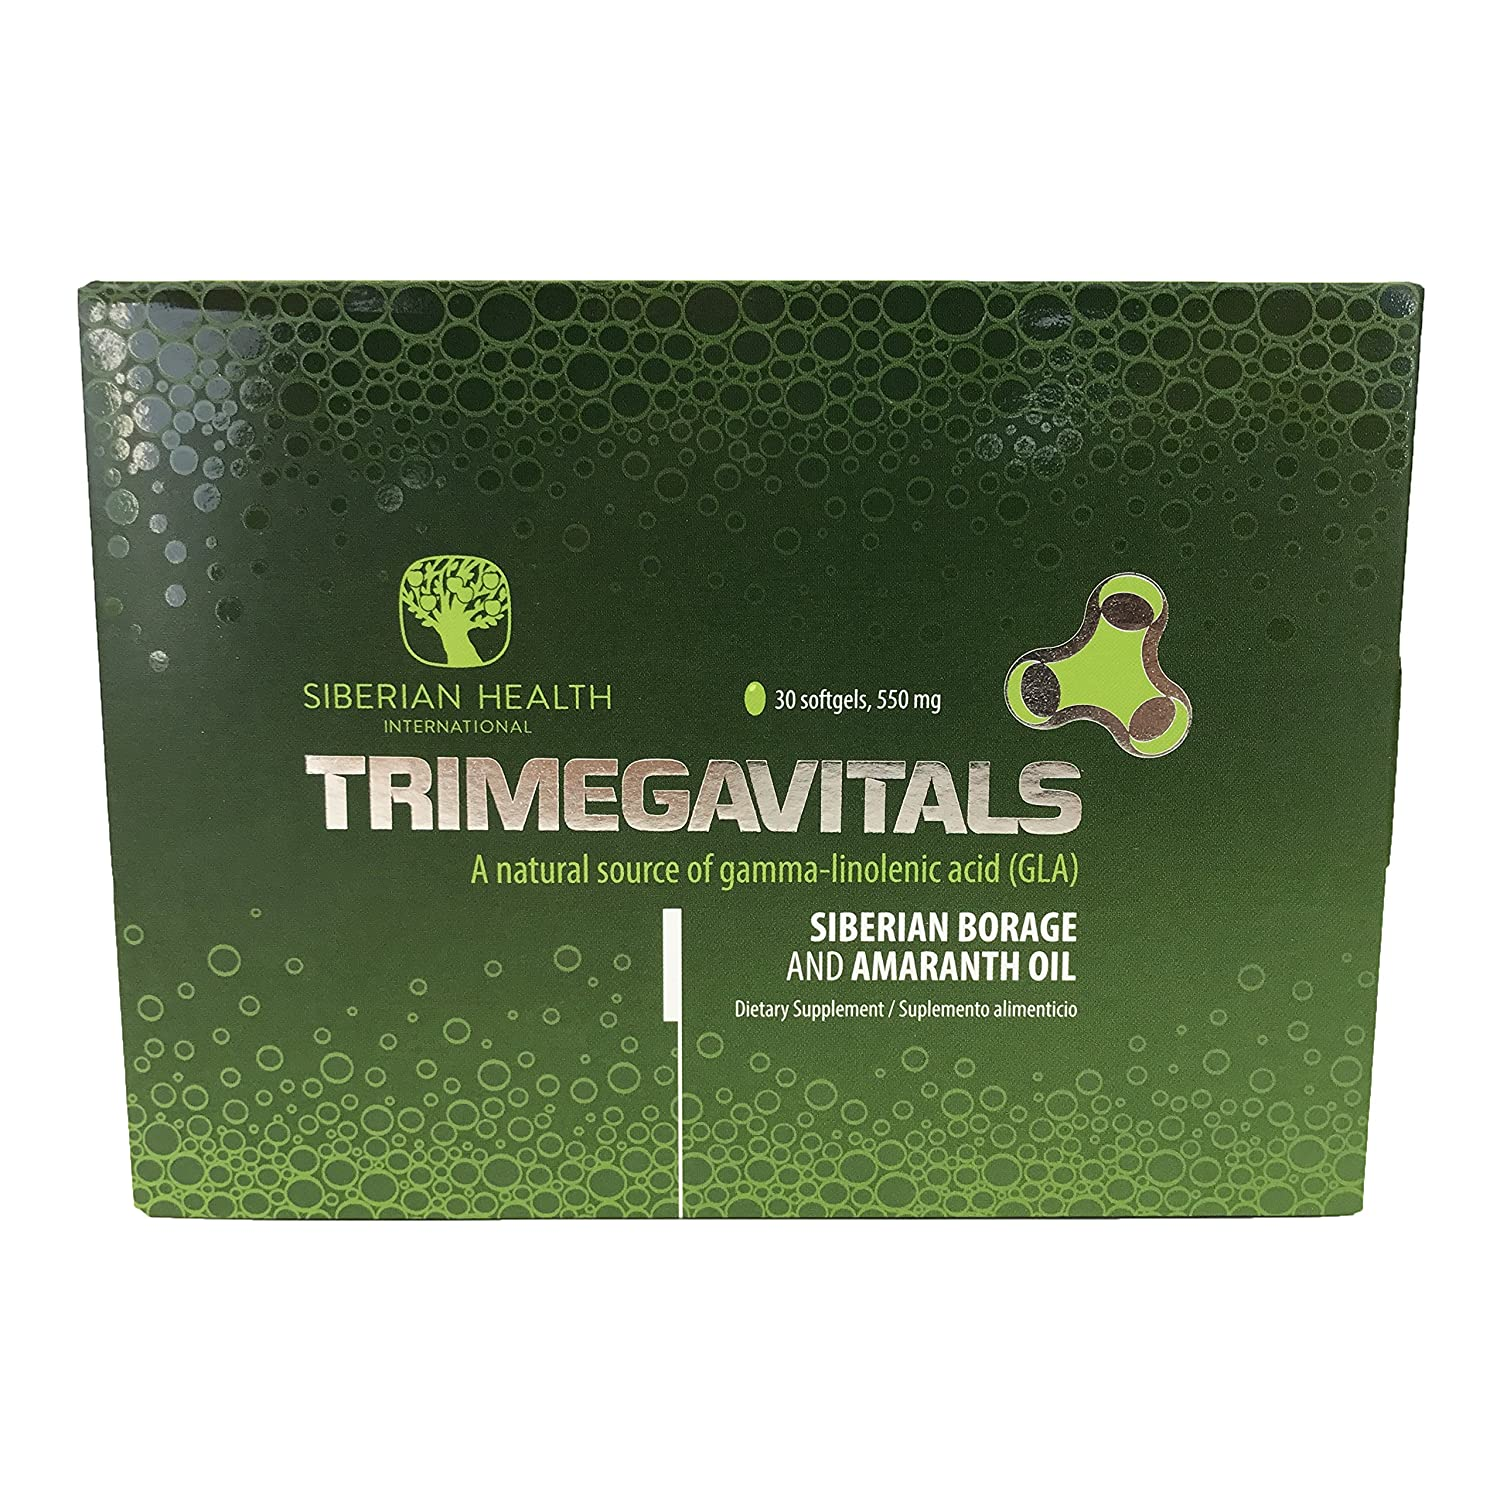 Amazon.com: TRIMEGAVITALS. Siberian Borage & Amaranth (30CAP) (Gelatin Cap): Health & Personal Care